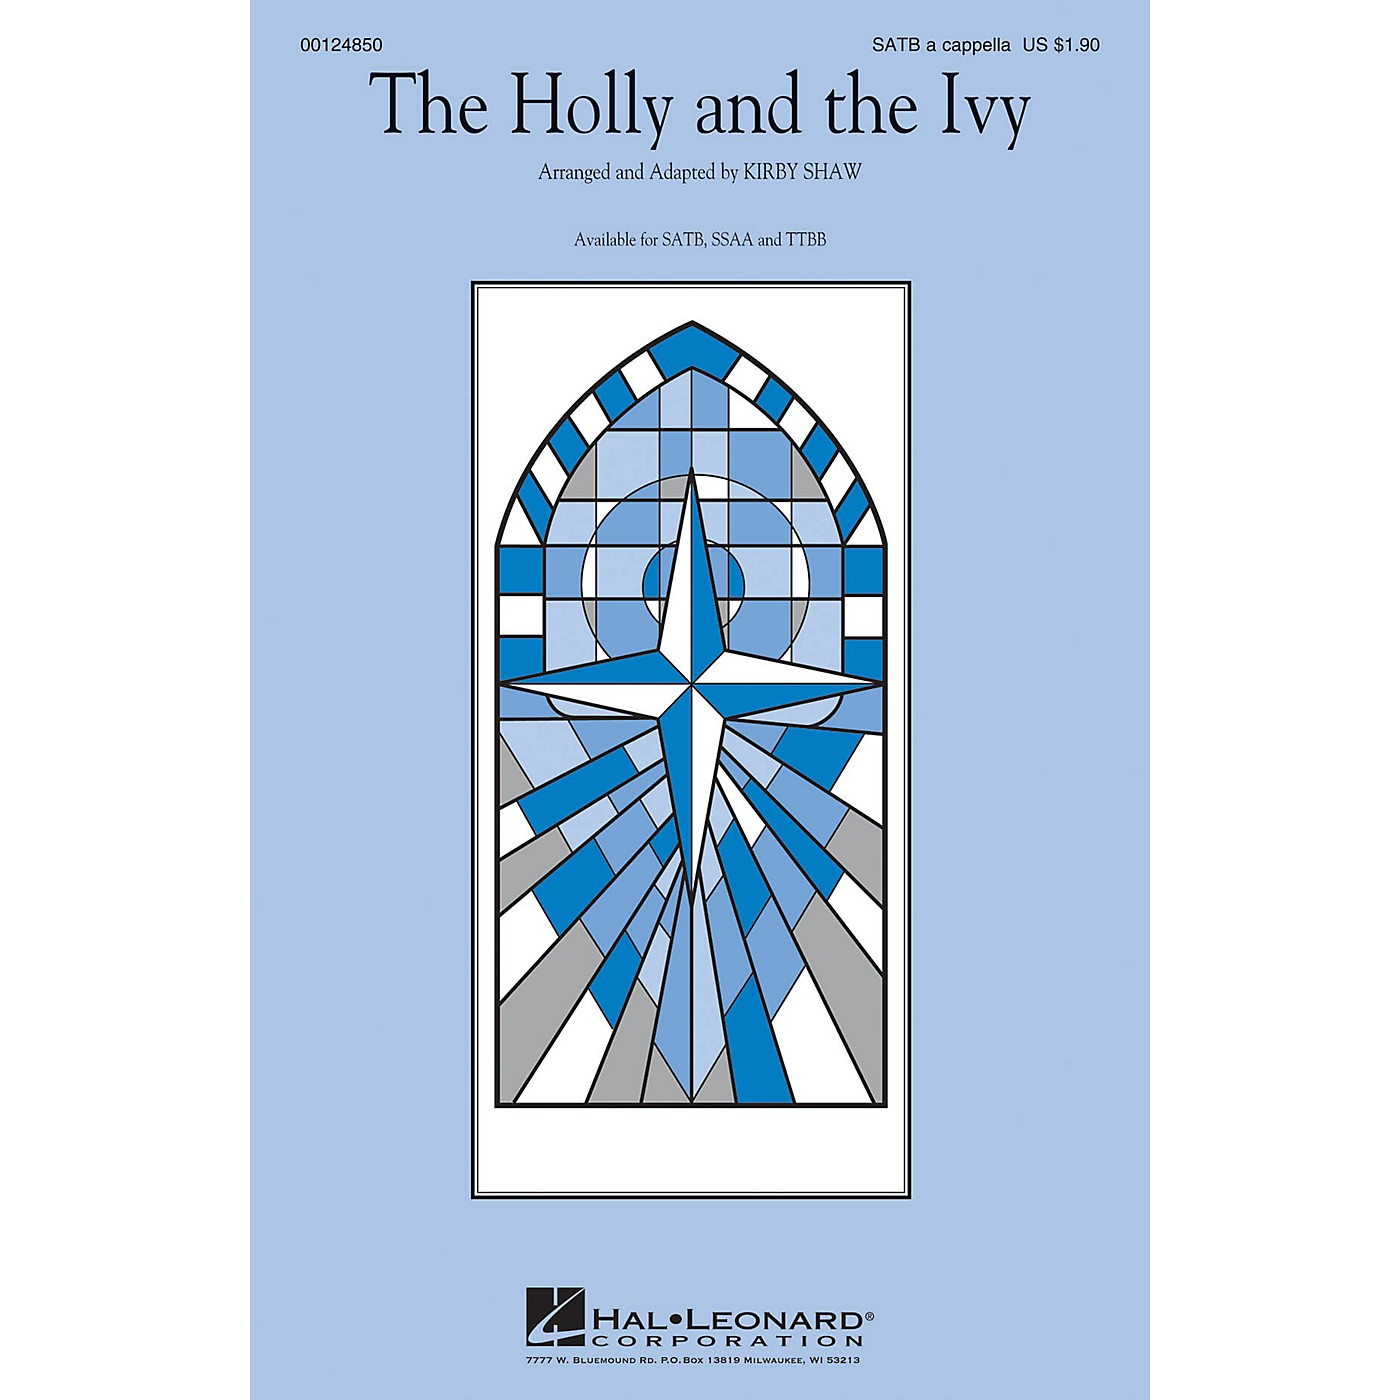 Hal Leonard The Holly and the Ivy SATB a cappella arranged by Kirby Shaw thumbnail